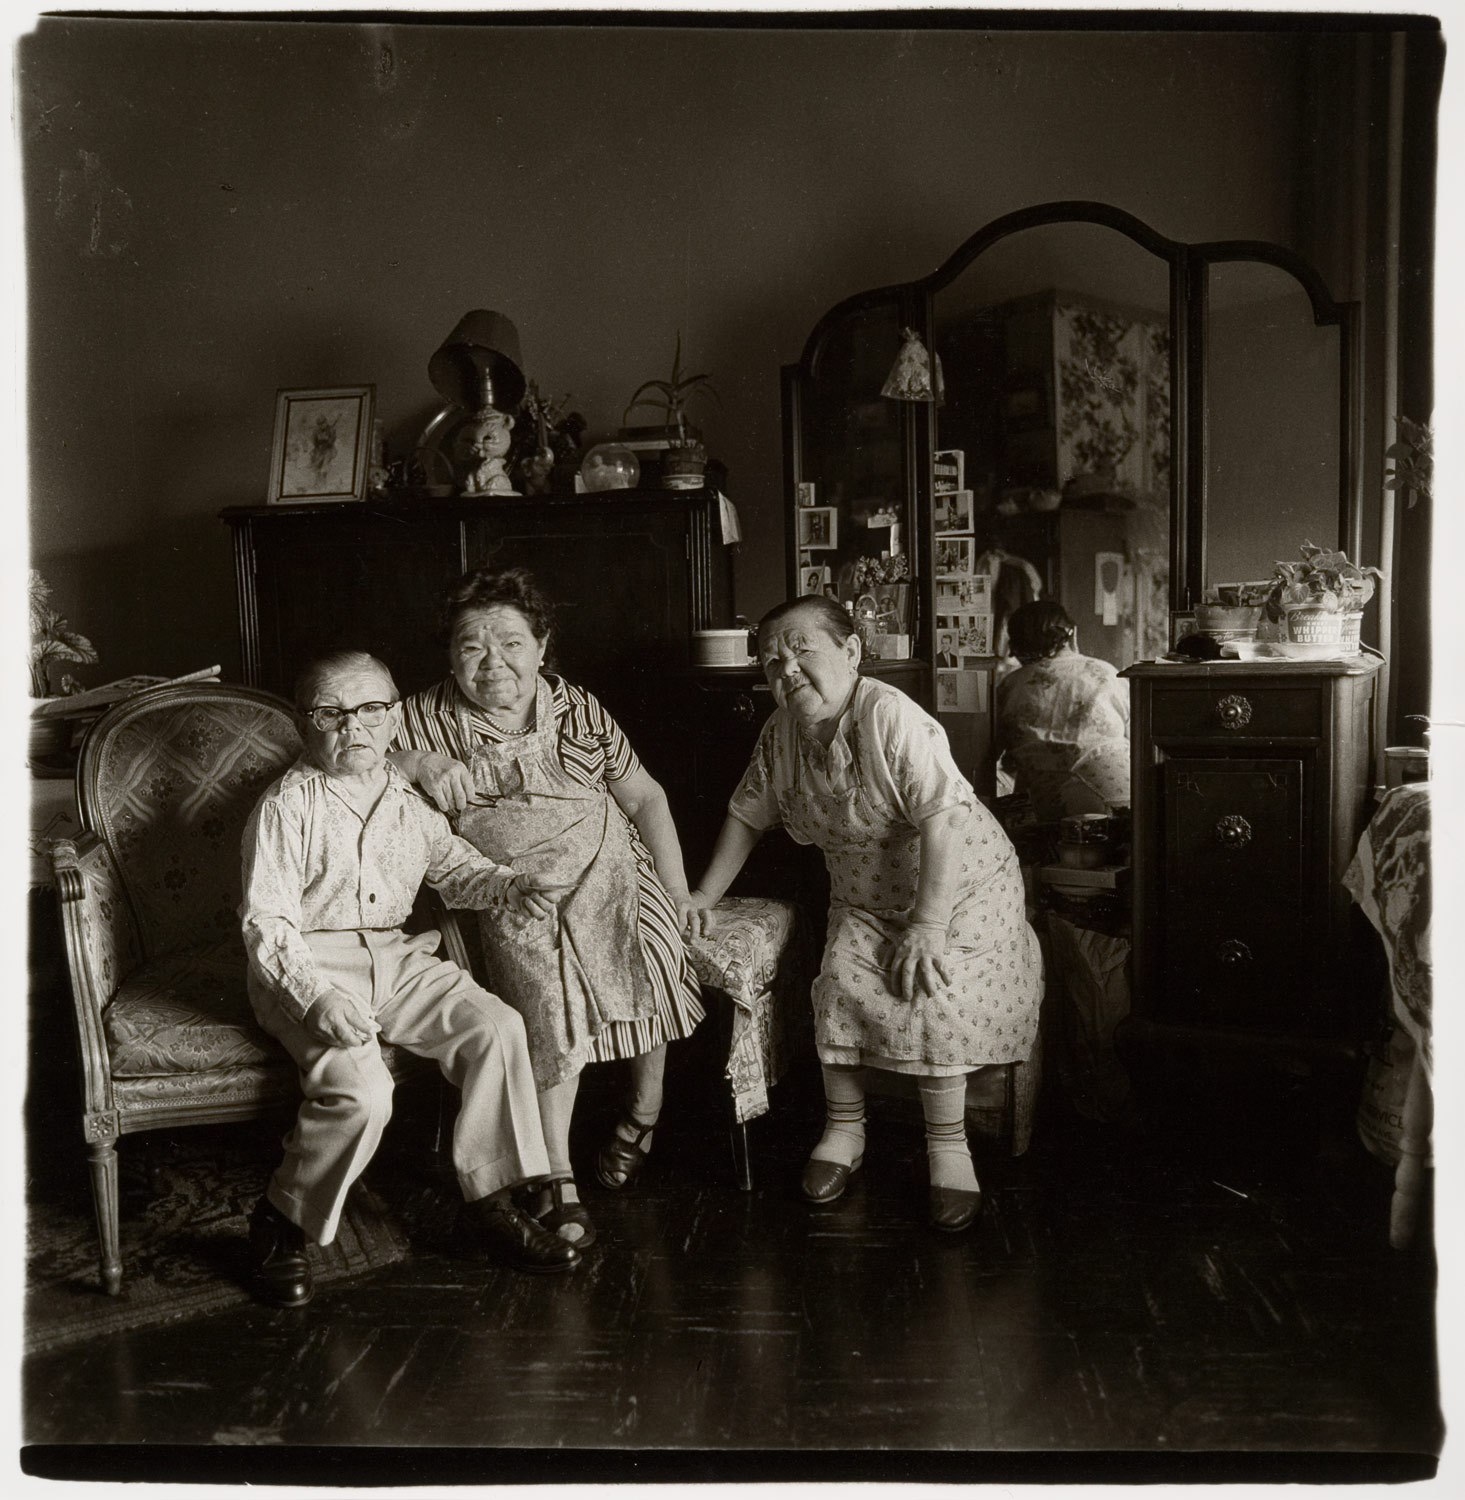 Russian midget friends in a living room on 100th Street, N.Y.C.